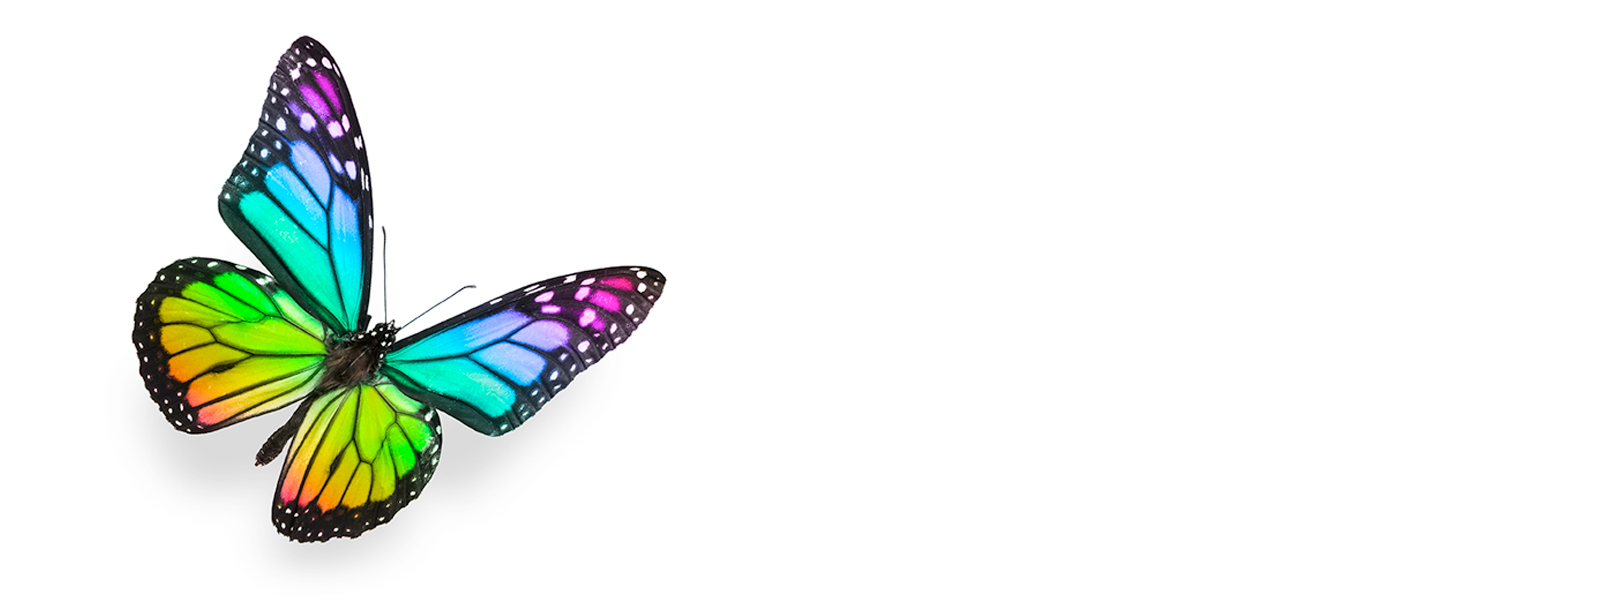 ovnp_headerimages_butterfly6